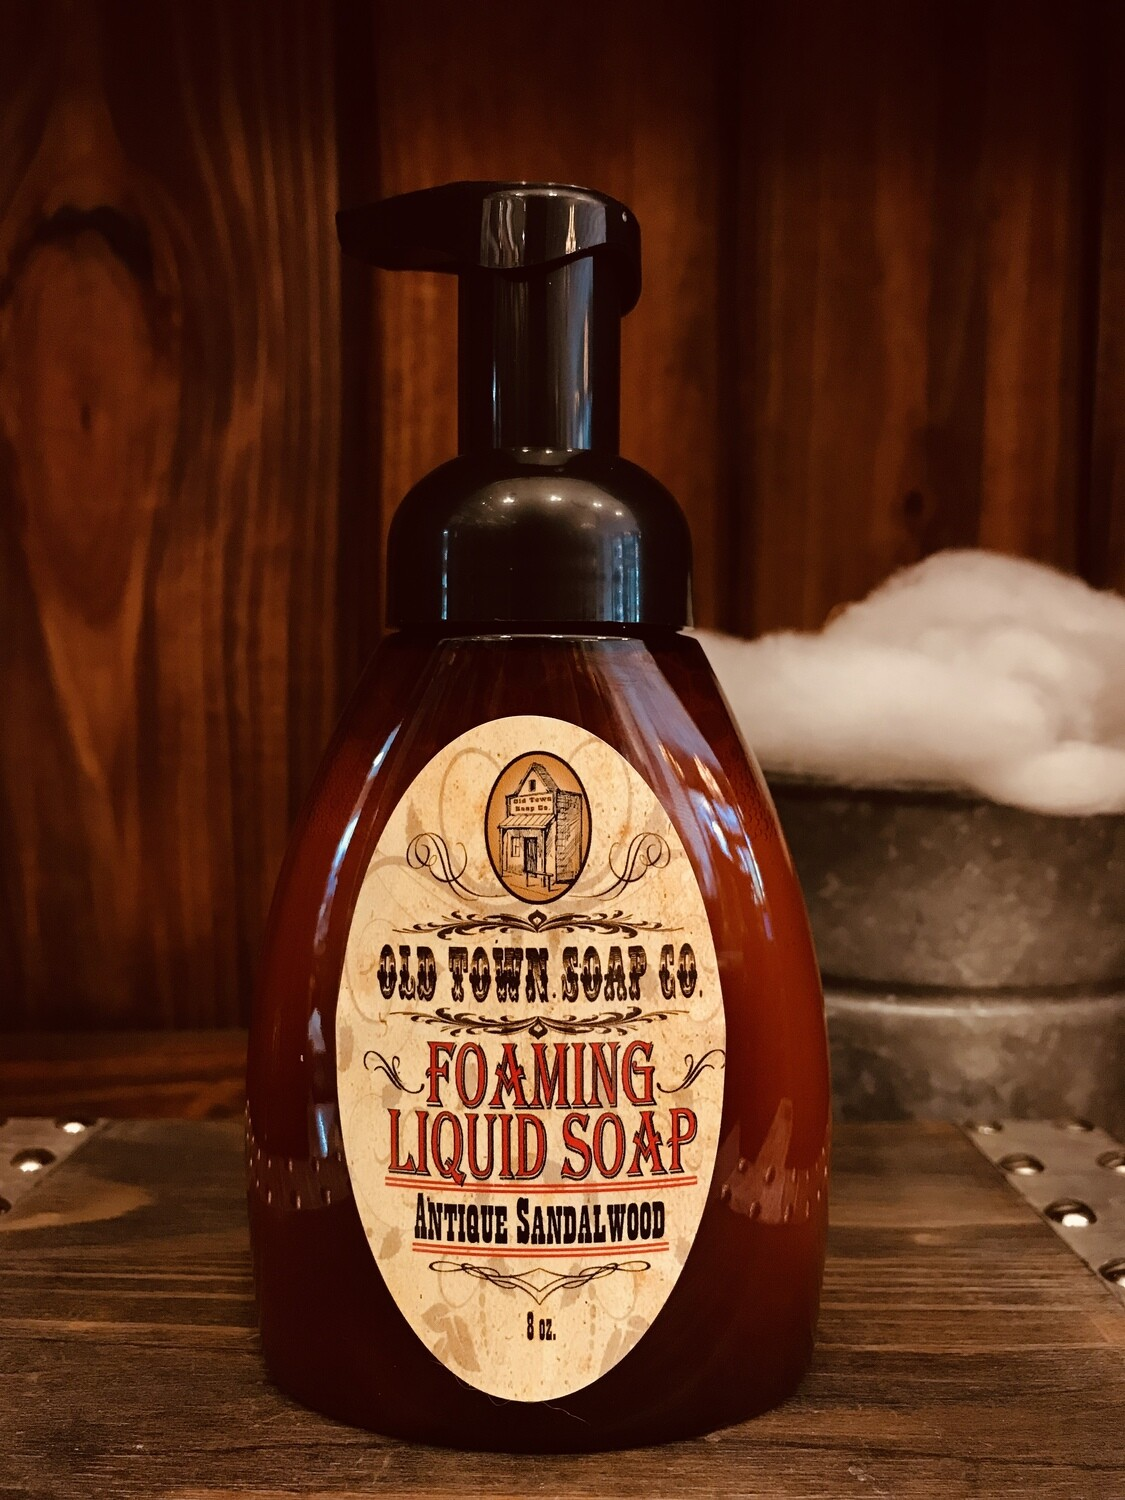 Antique Sandalwood -Pump Liquid Soap